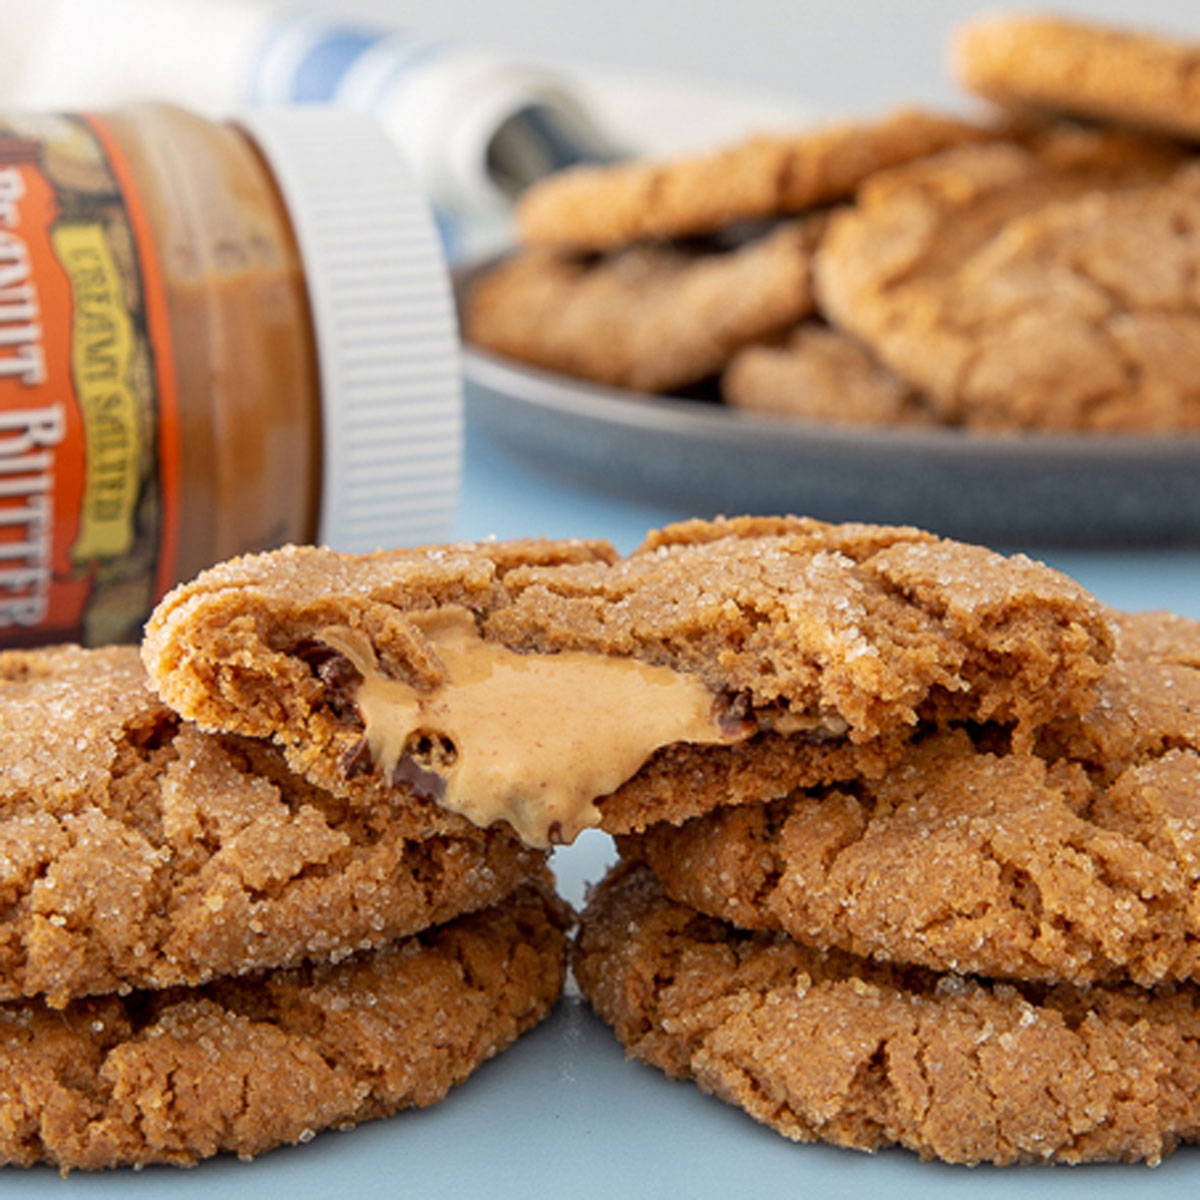 trader joes peanut butter cup cookies